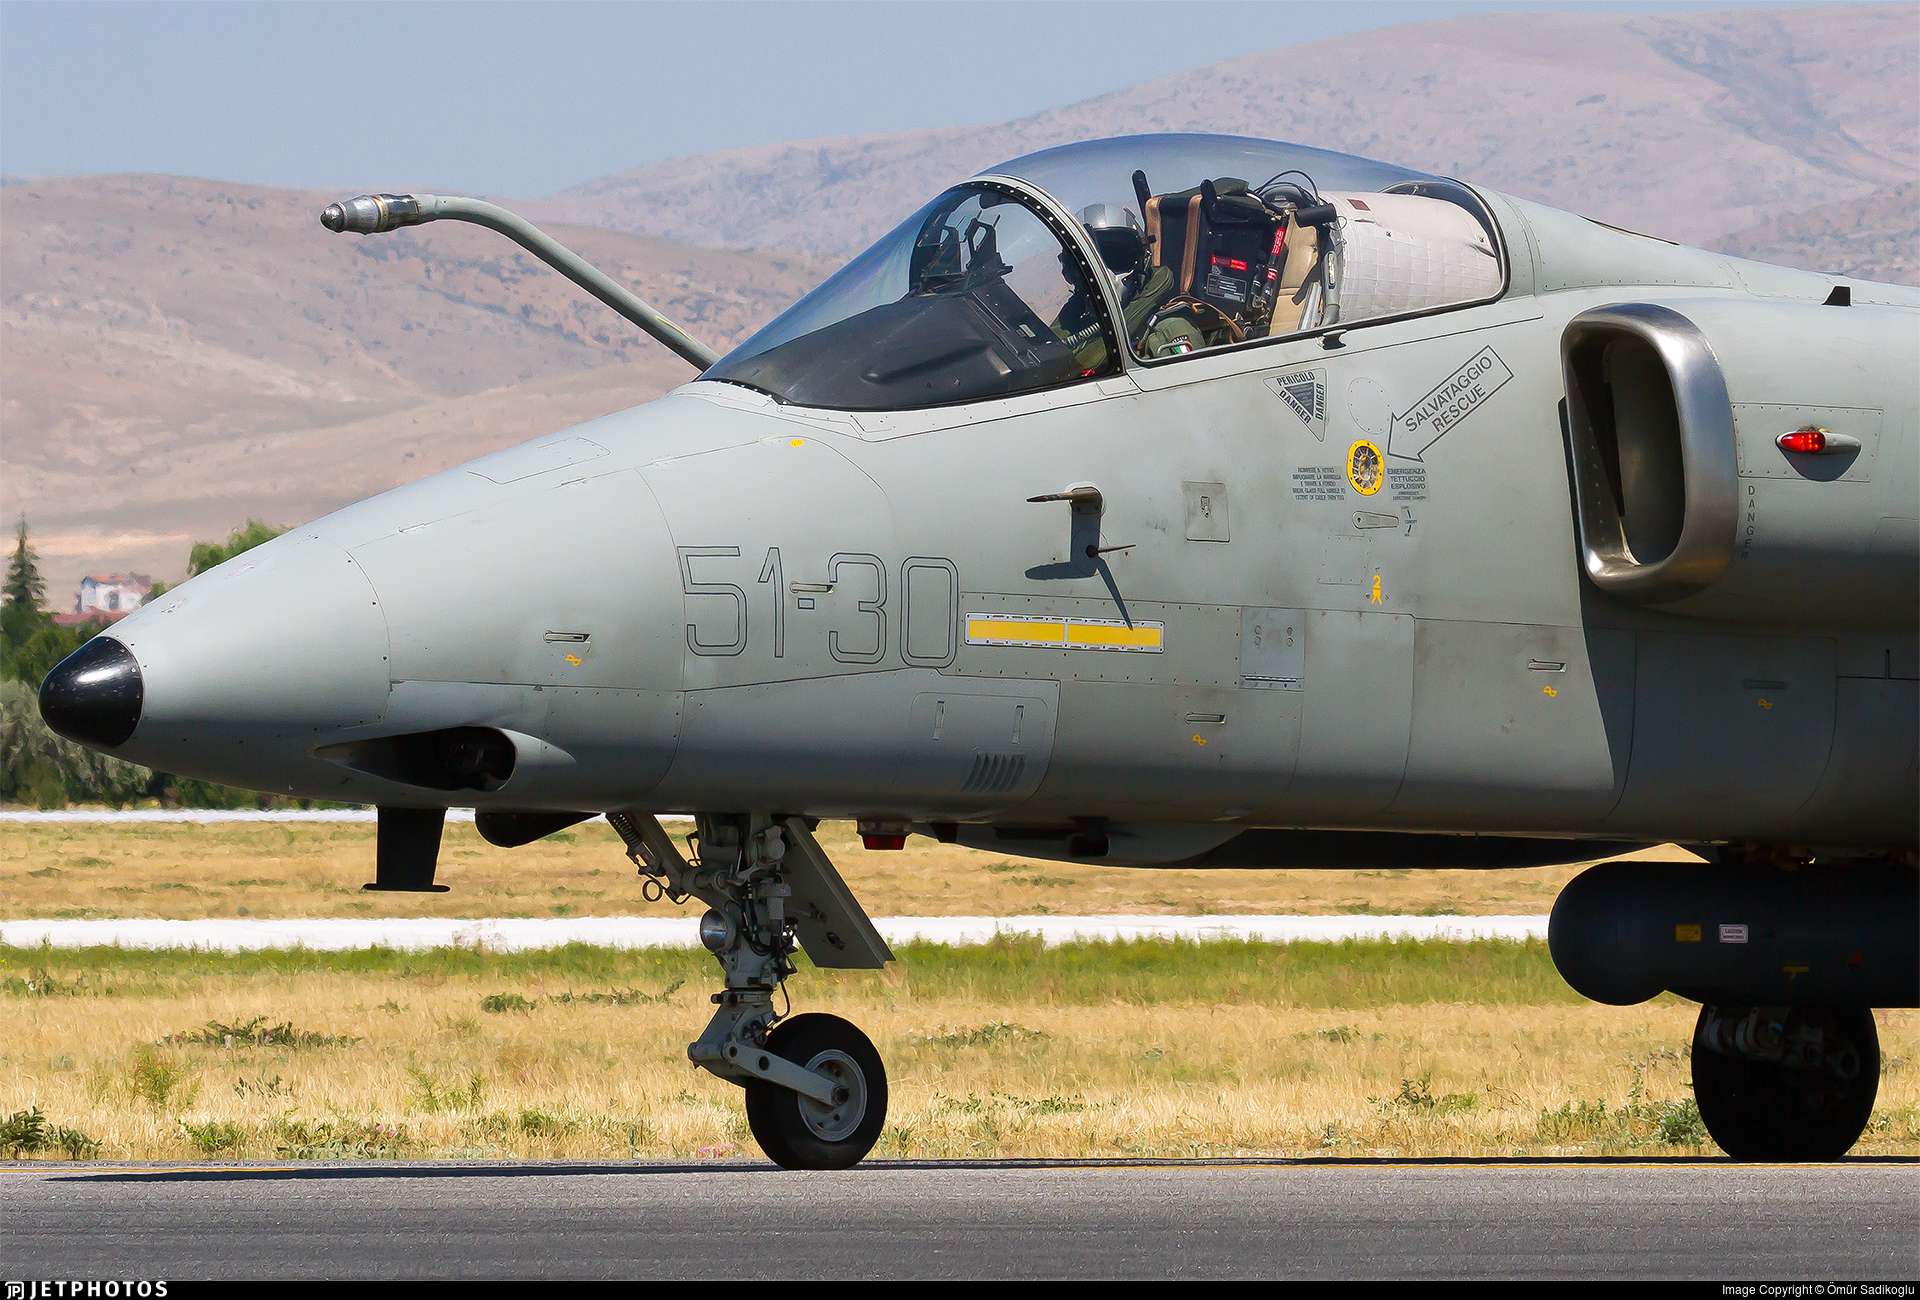 MM7170 - Alenia/Aermacchi/Embraer AMX - Italy - Air Force